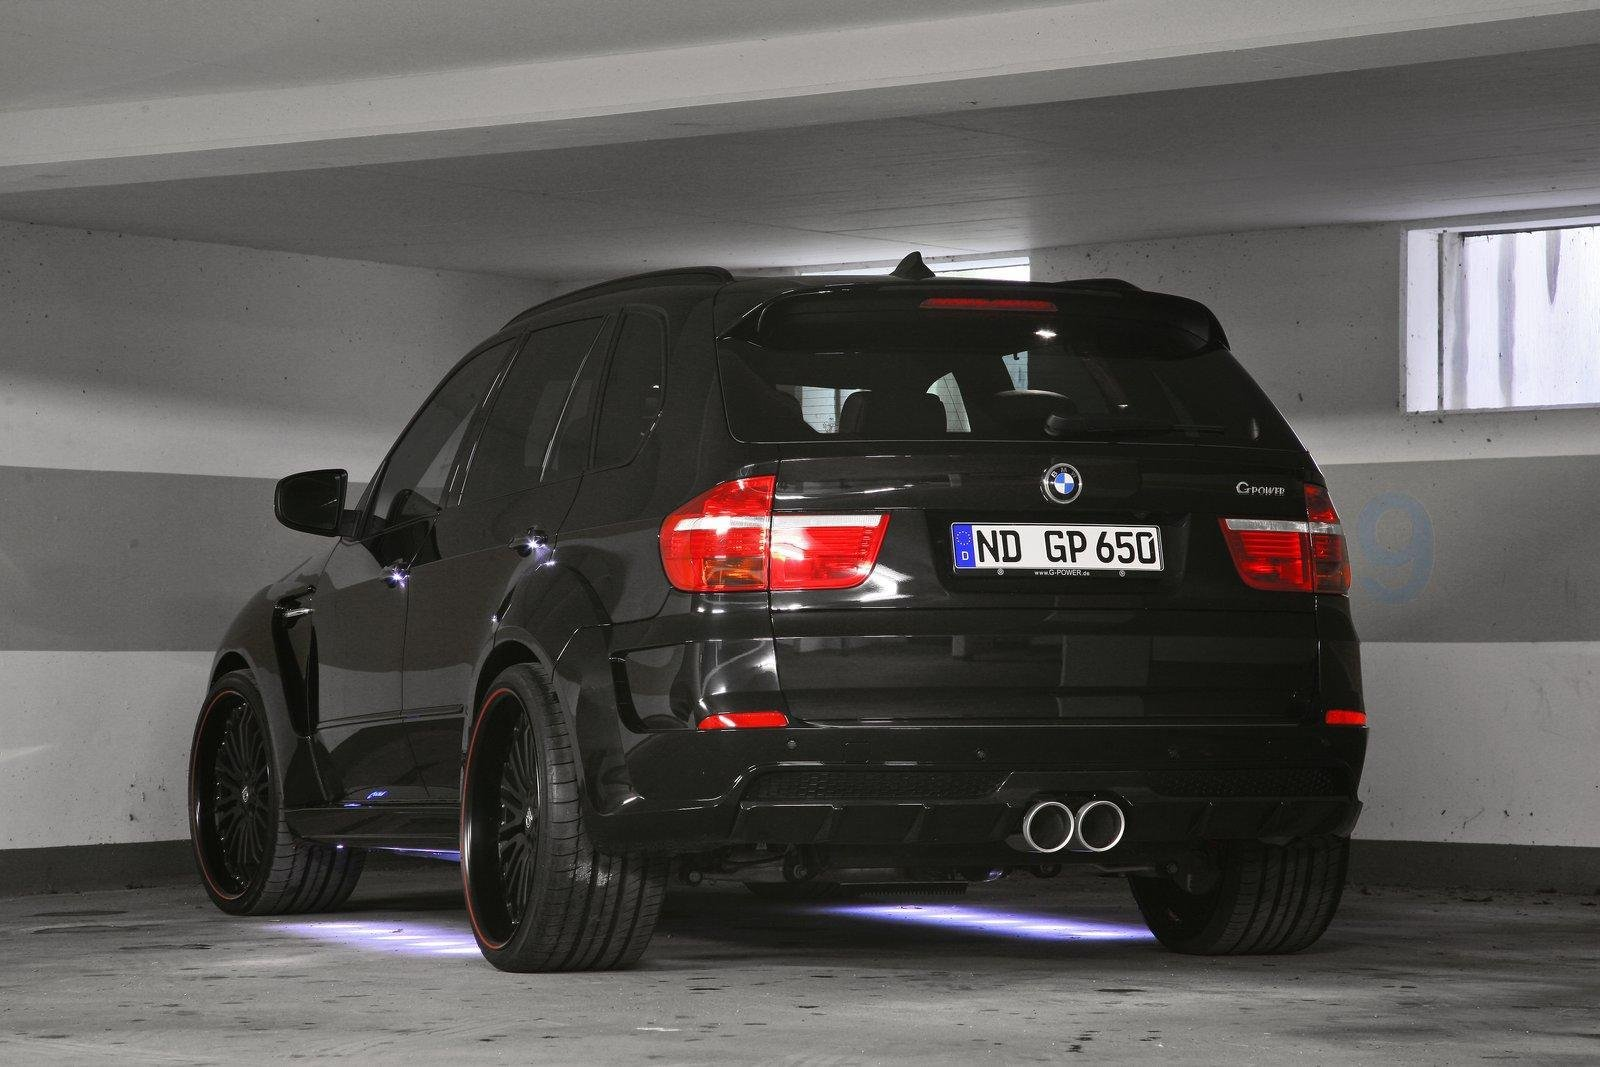 2010 bmw x5 m typhoon by g power picture 374252 car review top speed. Black Bedroom Furniture Sets. Home Design Ideas